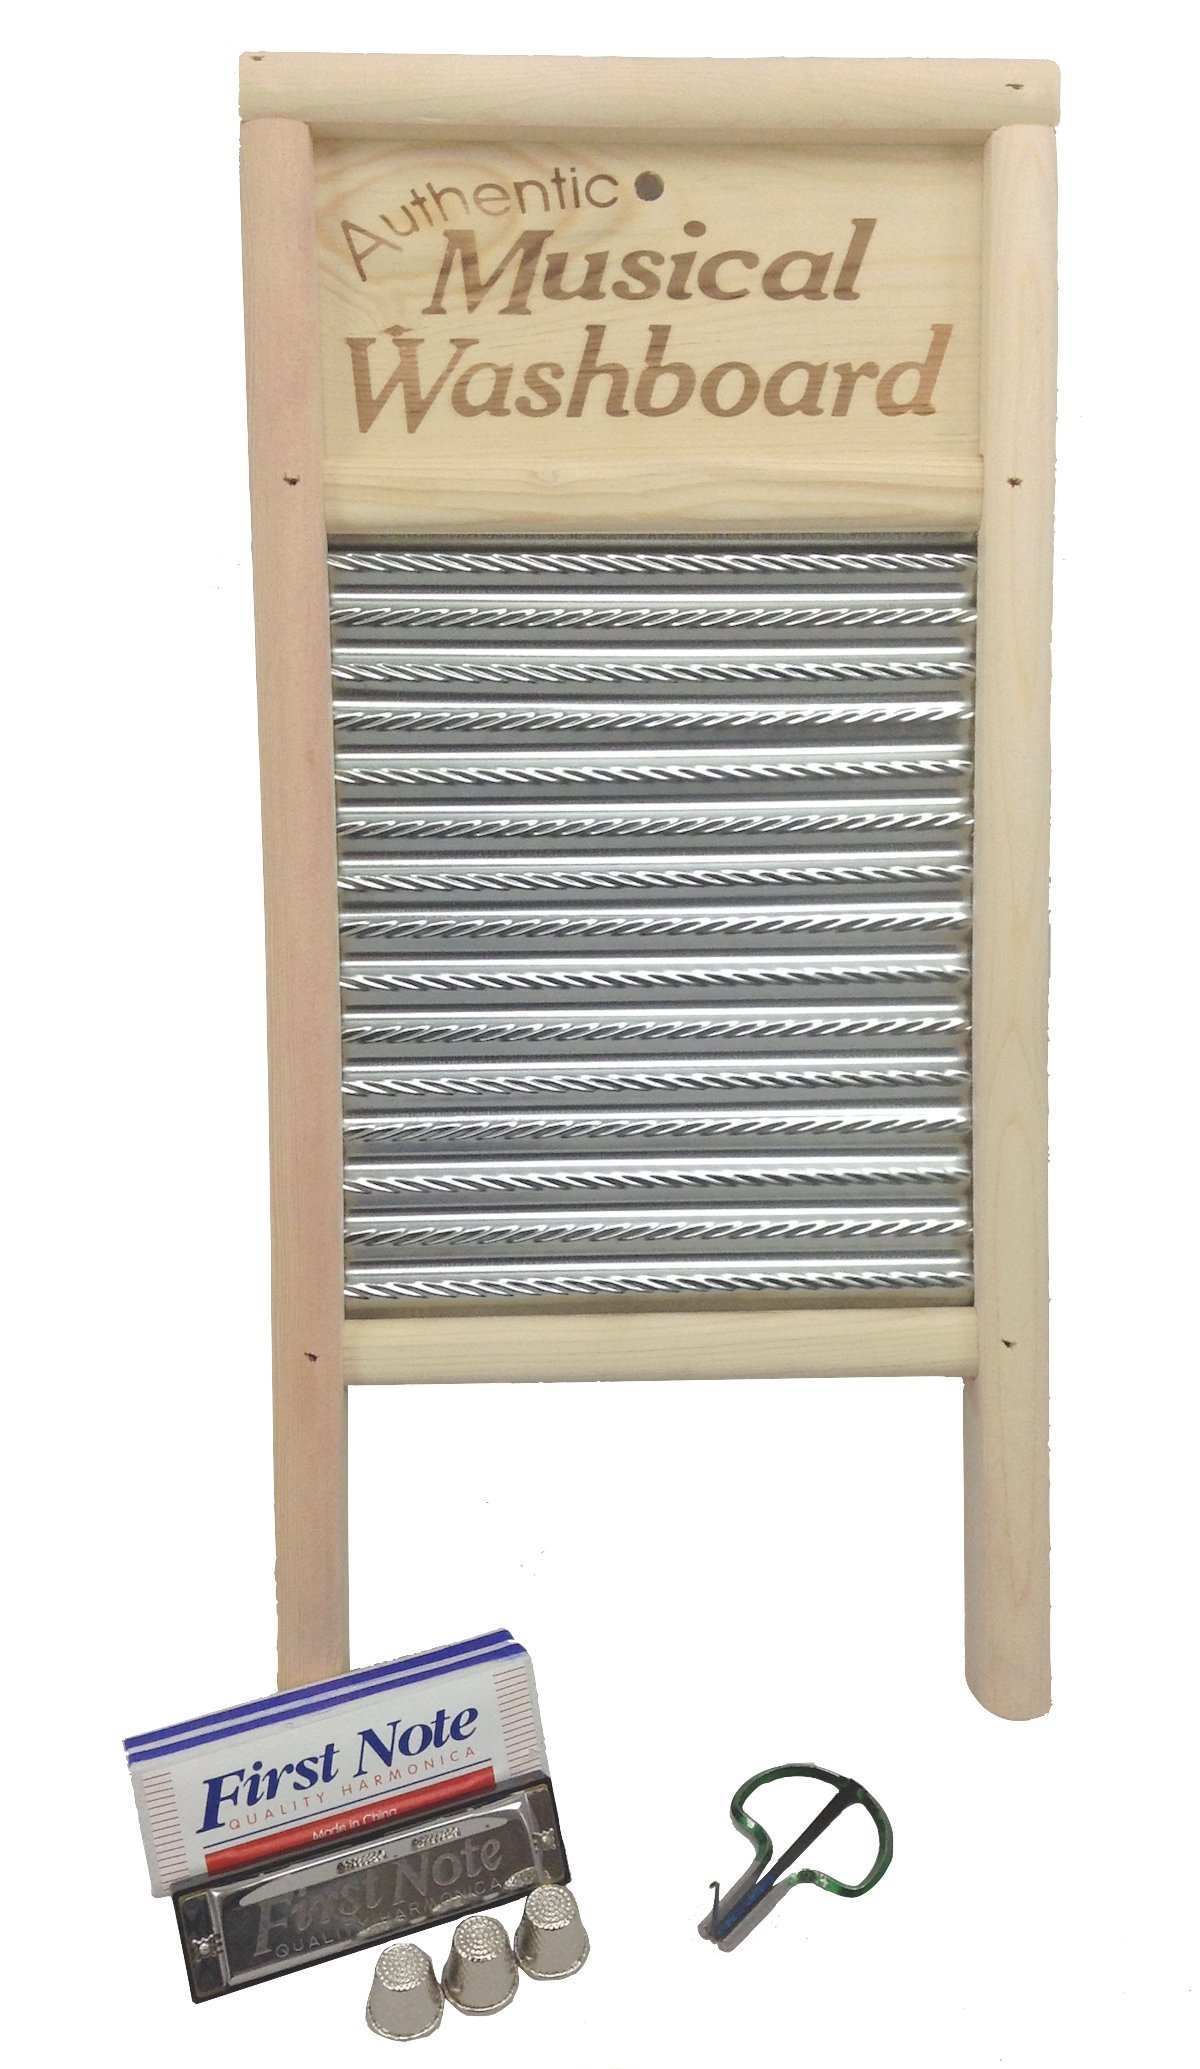 Grover/Trophy Authentic Musical Washboard with Jaw Harp and Harmonica  by Trophy